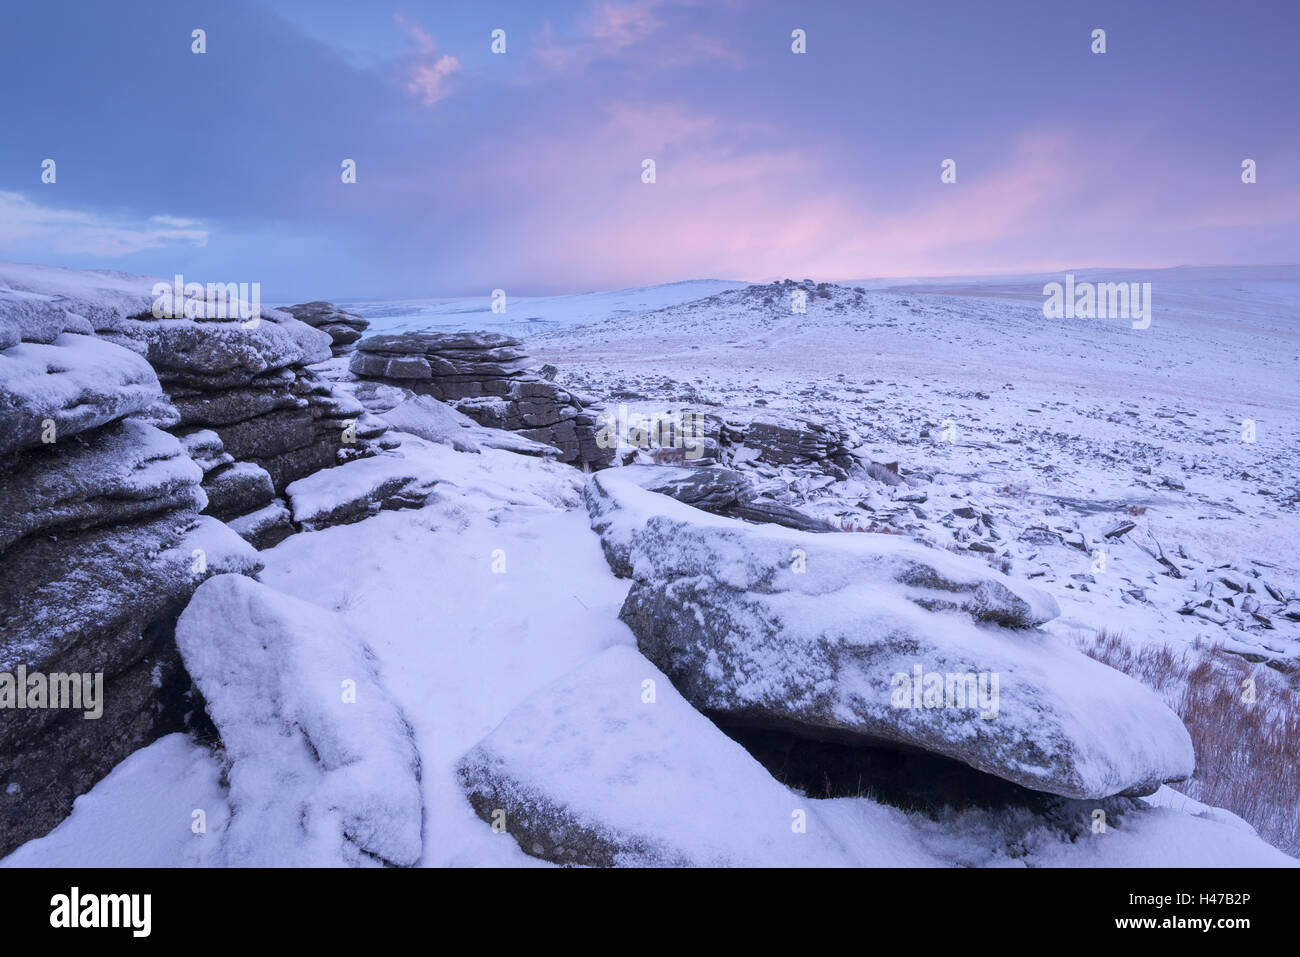 Dawn emerges over a snow covered moorland, Great Staple Tor, Dartmoor National Park, Devon, England. Winter (January) - Stock Image